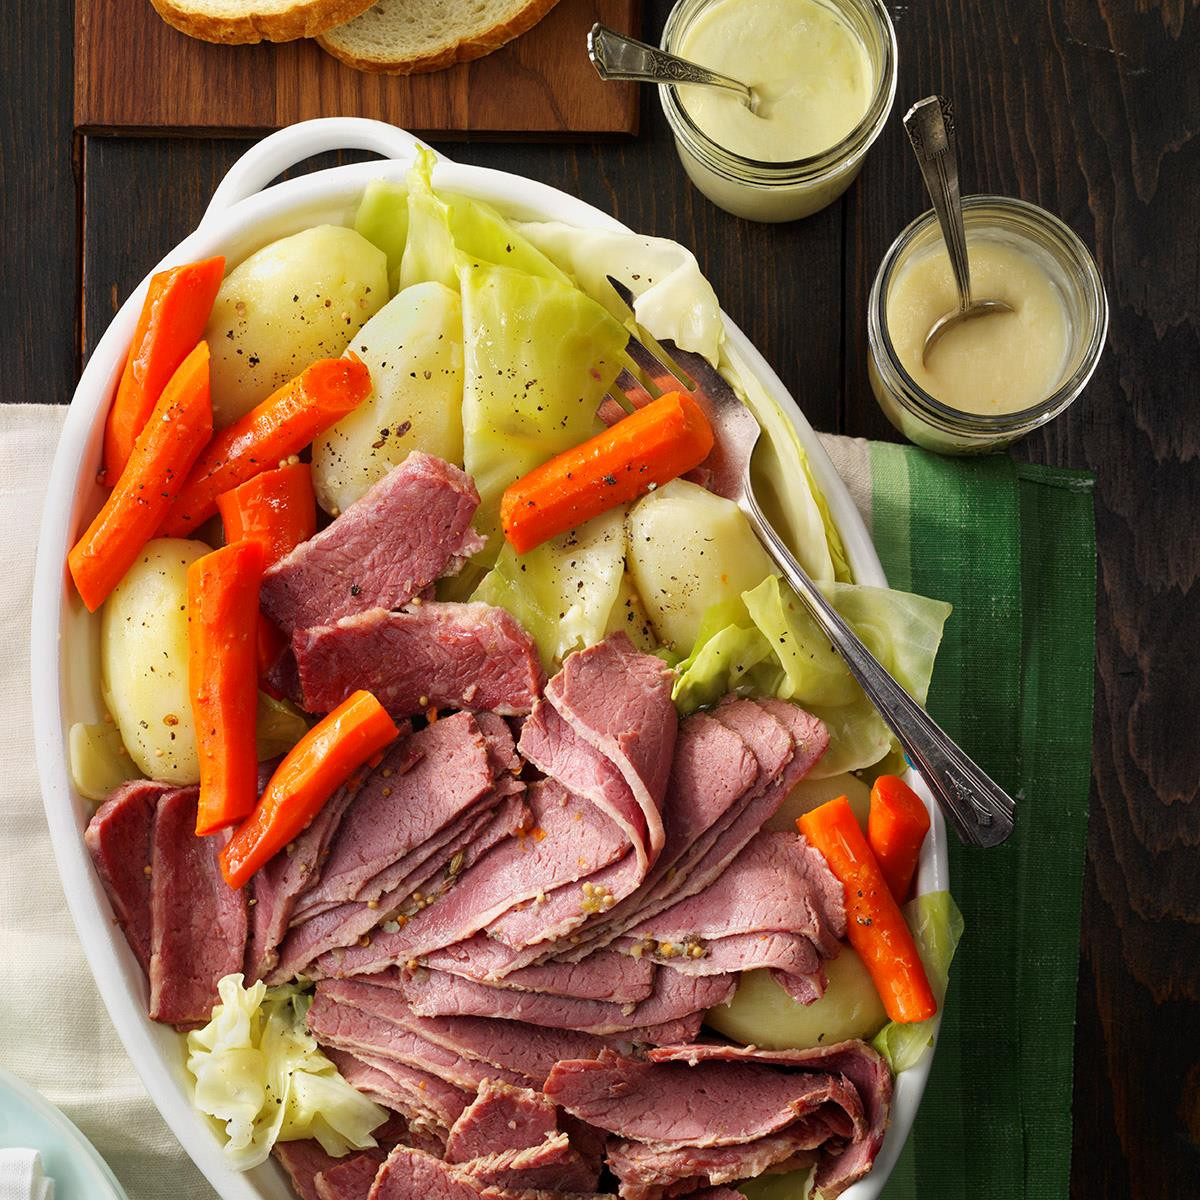 Cornbeef And Cabbage Recipe  Favorite Corned Beef and Cabbage Recipe